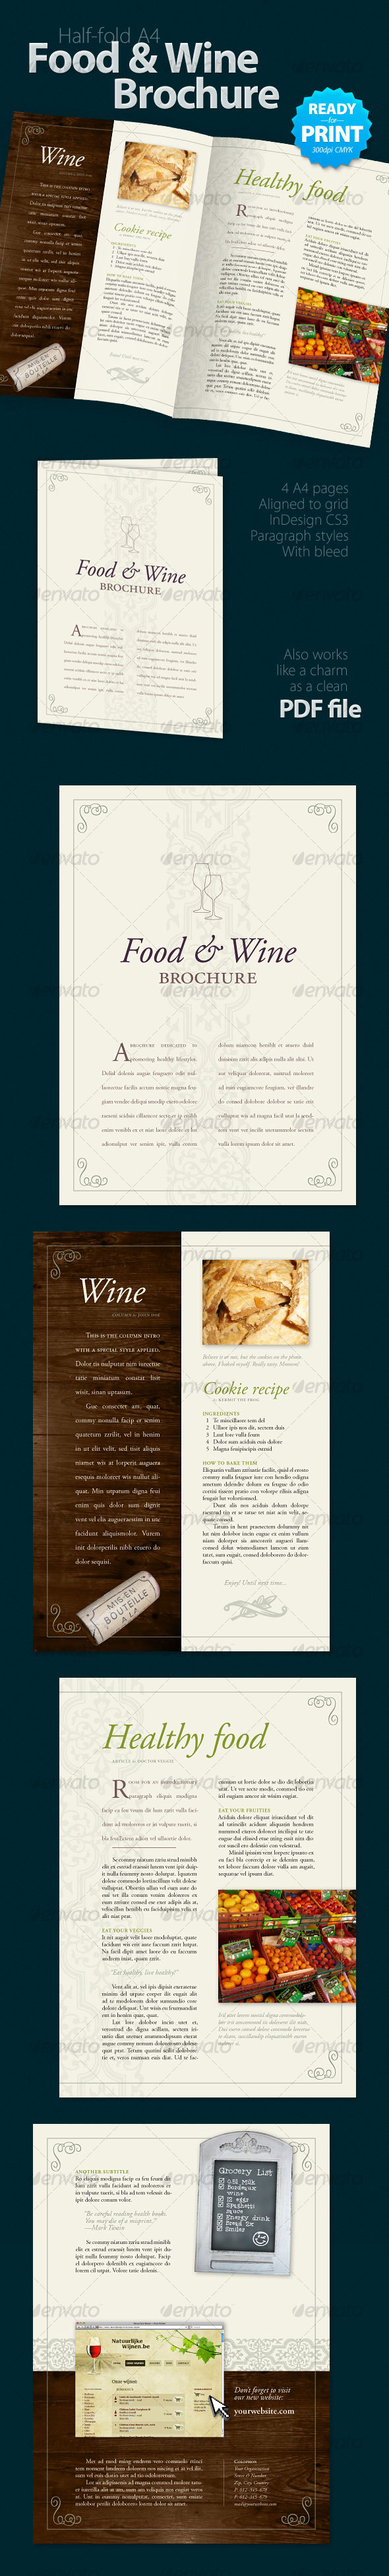 GraphicRiver Food & Wine Brochure 4 Pages 85836